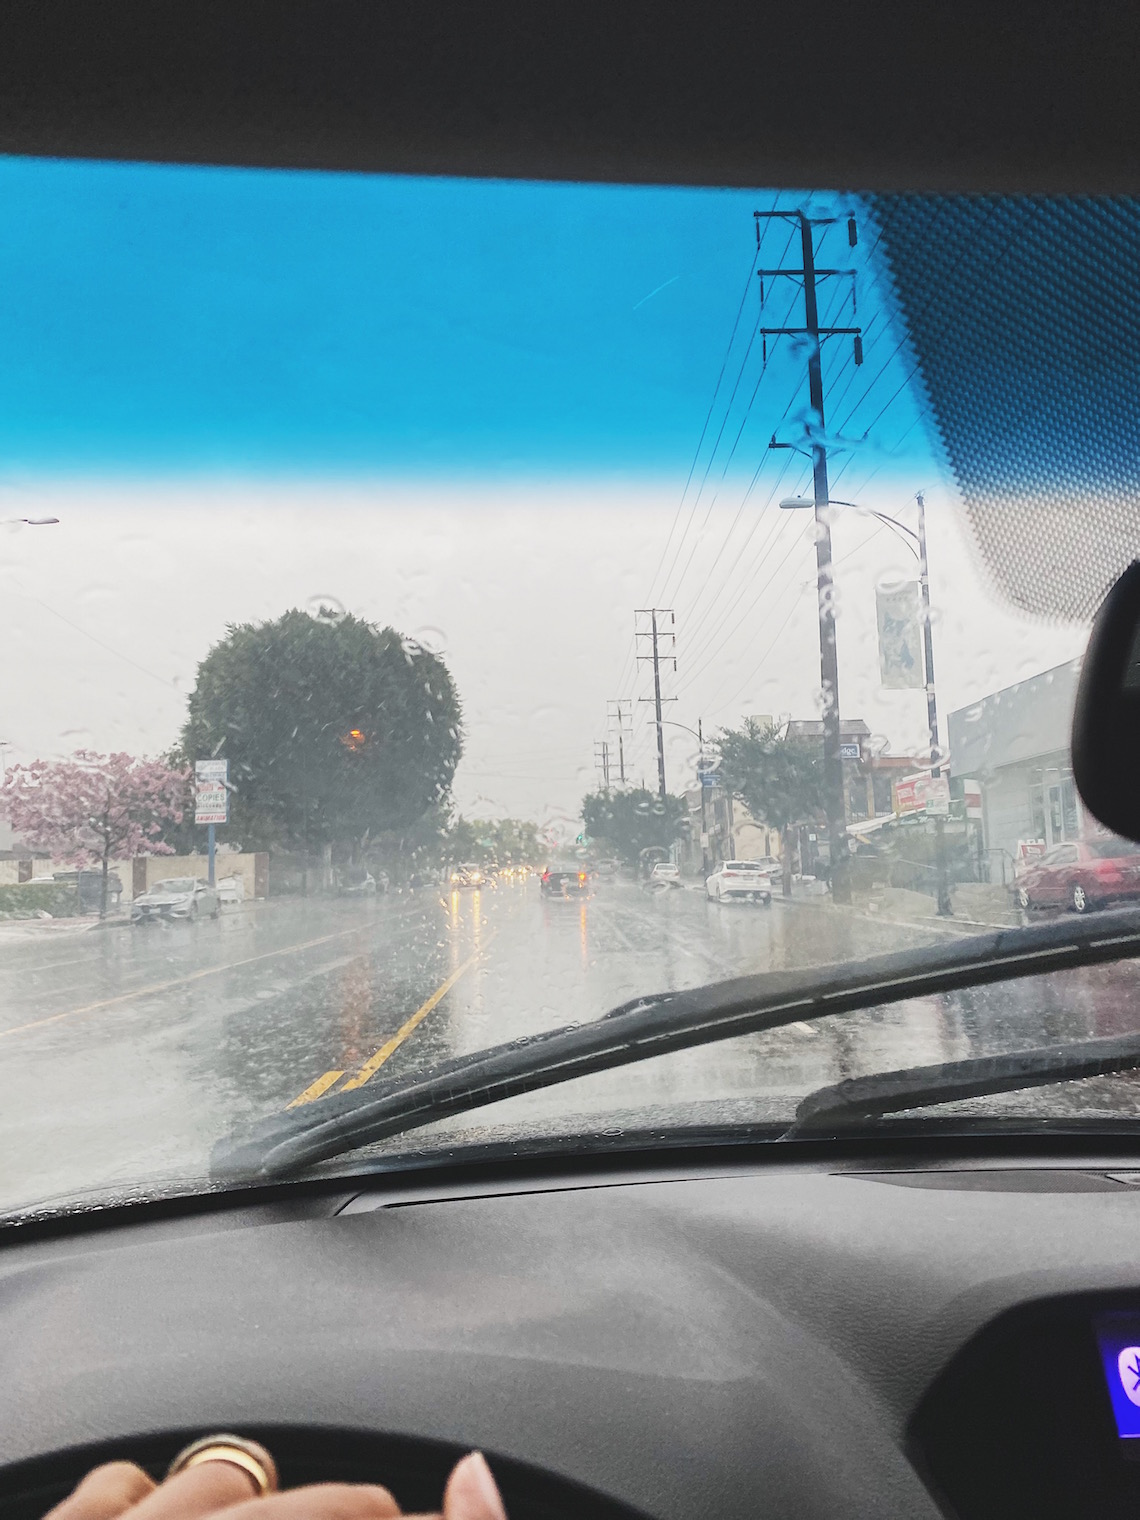 driving in rain-windshield wipers